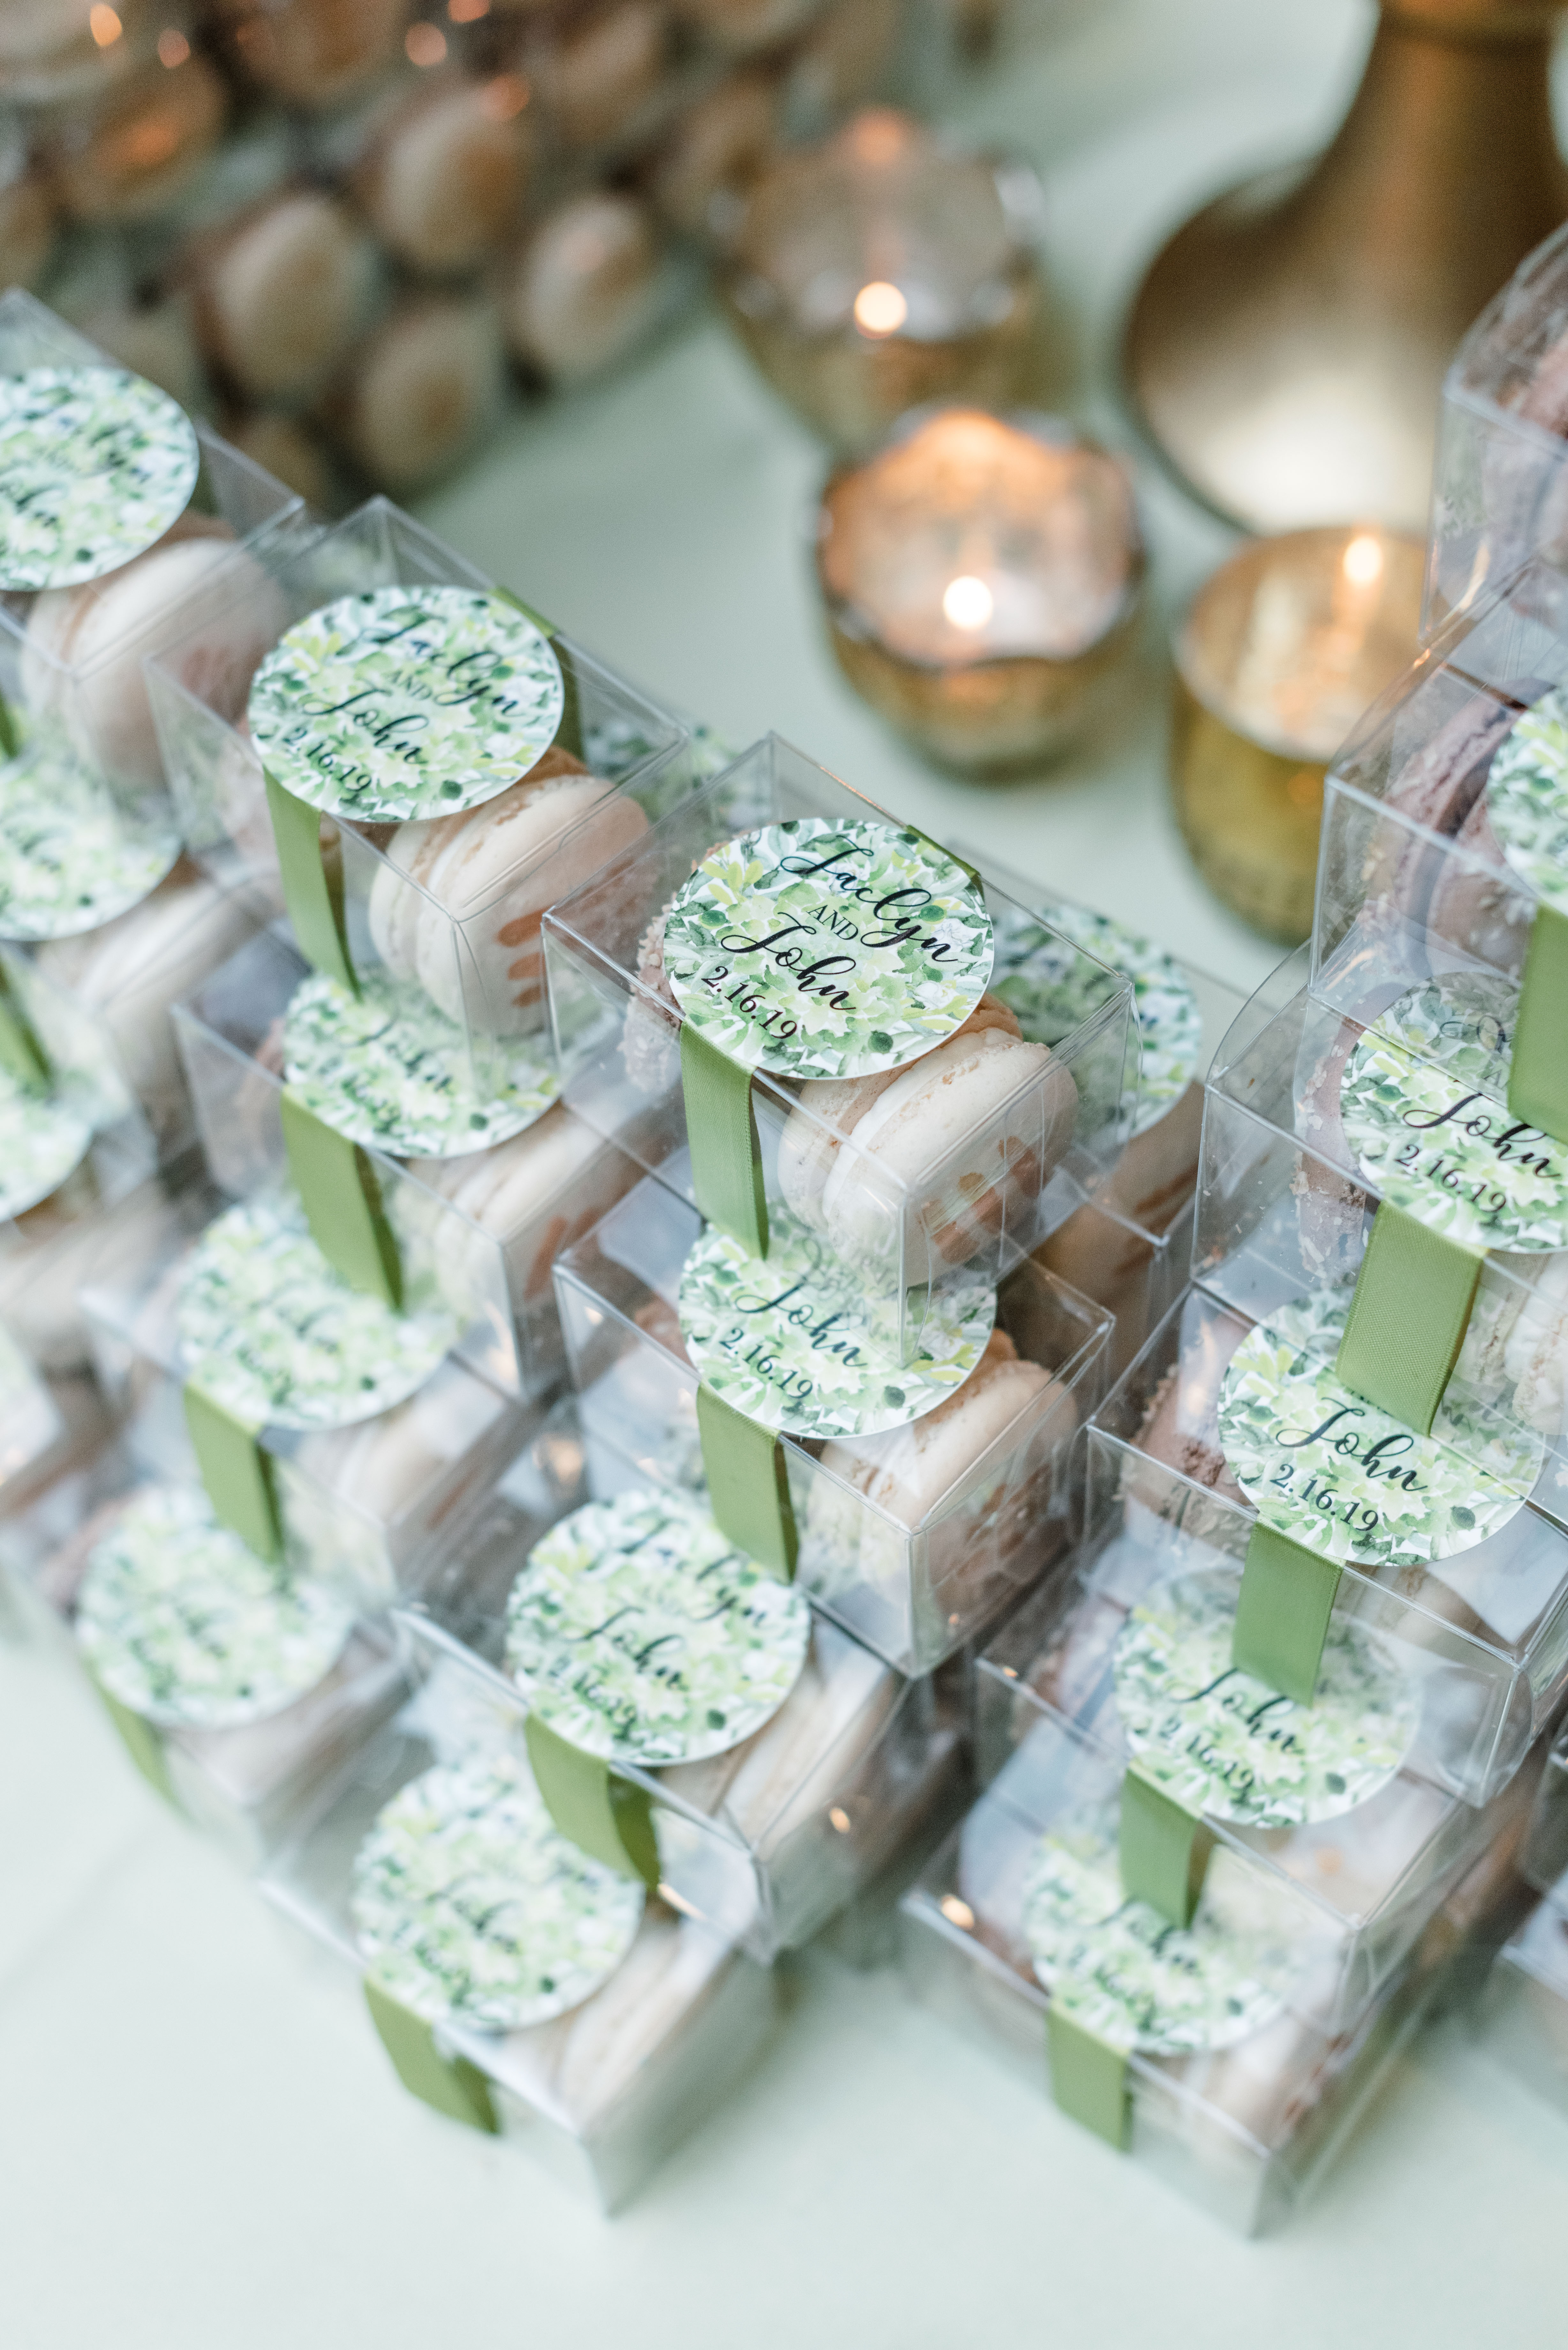 Macaron Party Favors